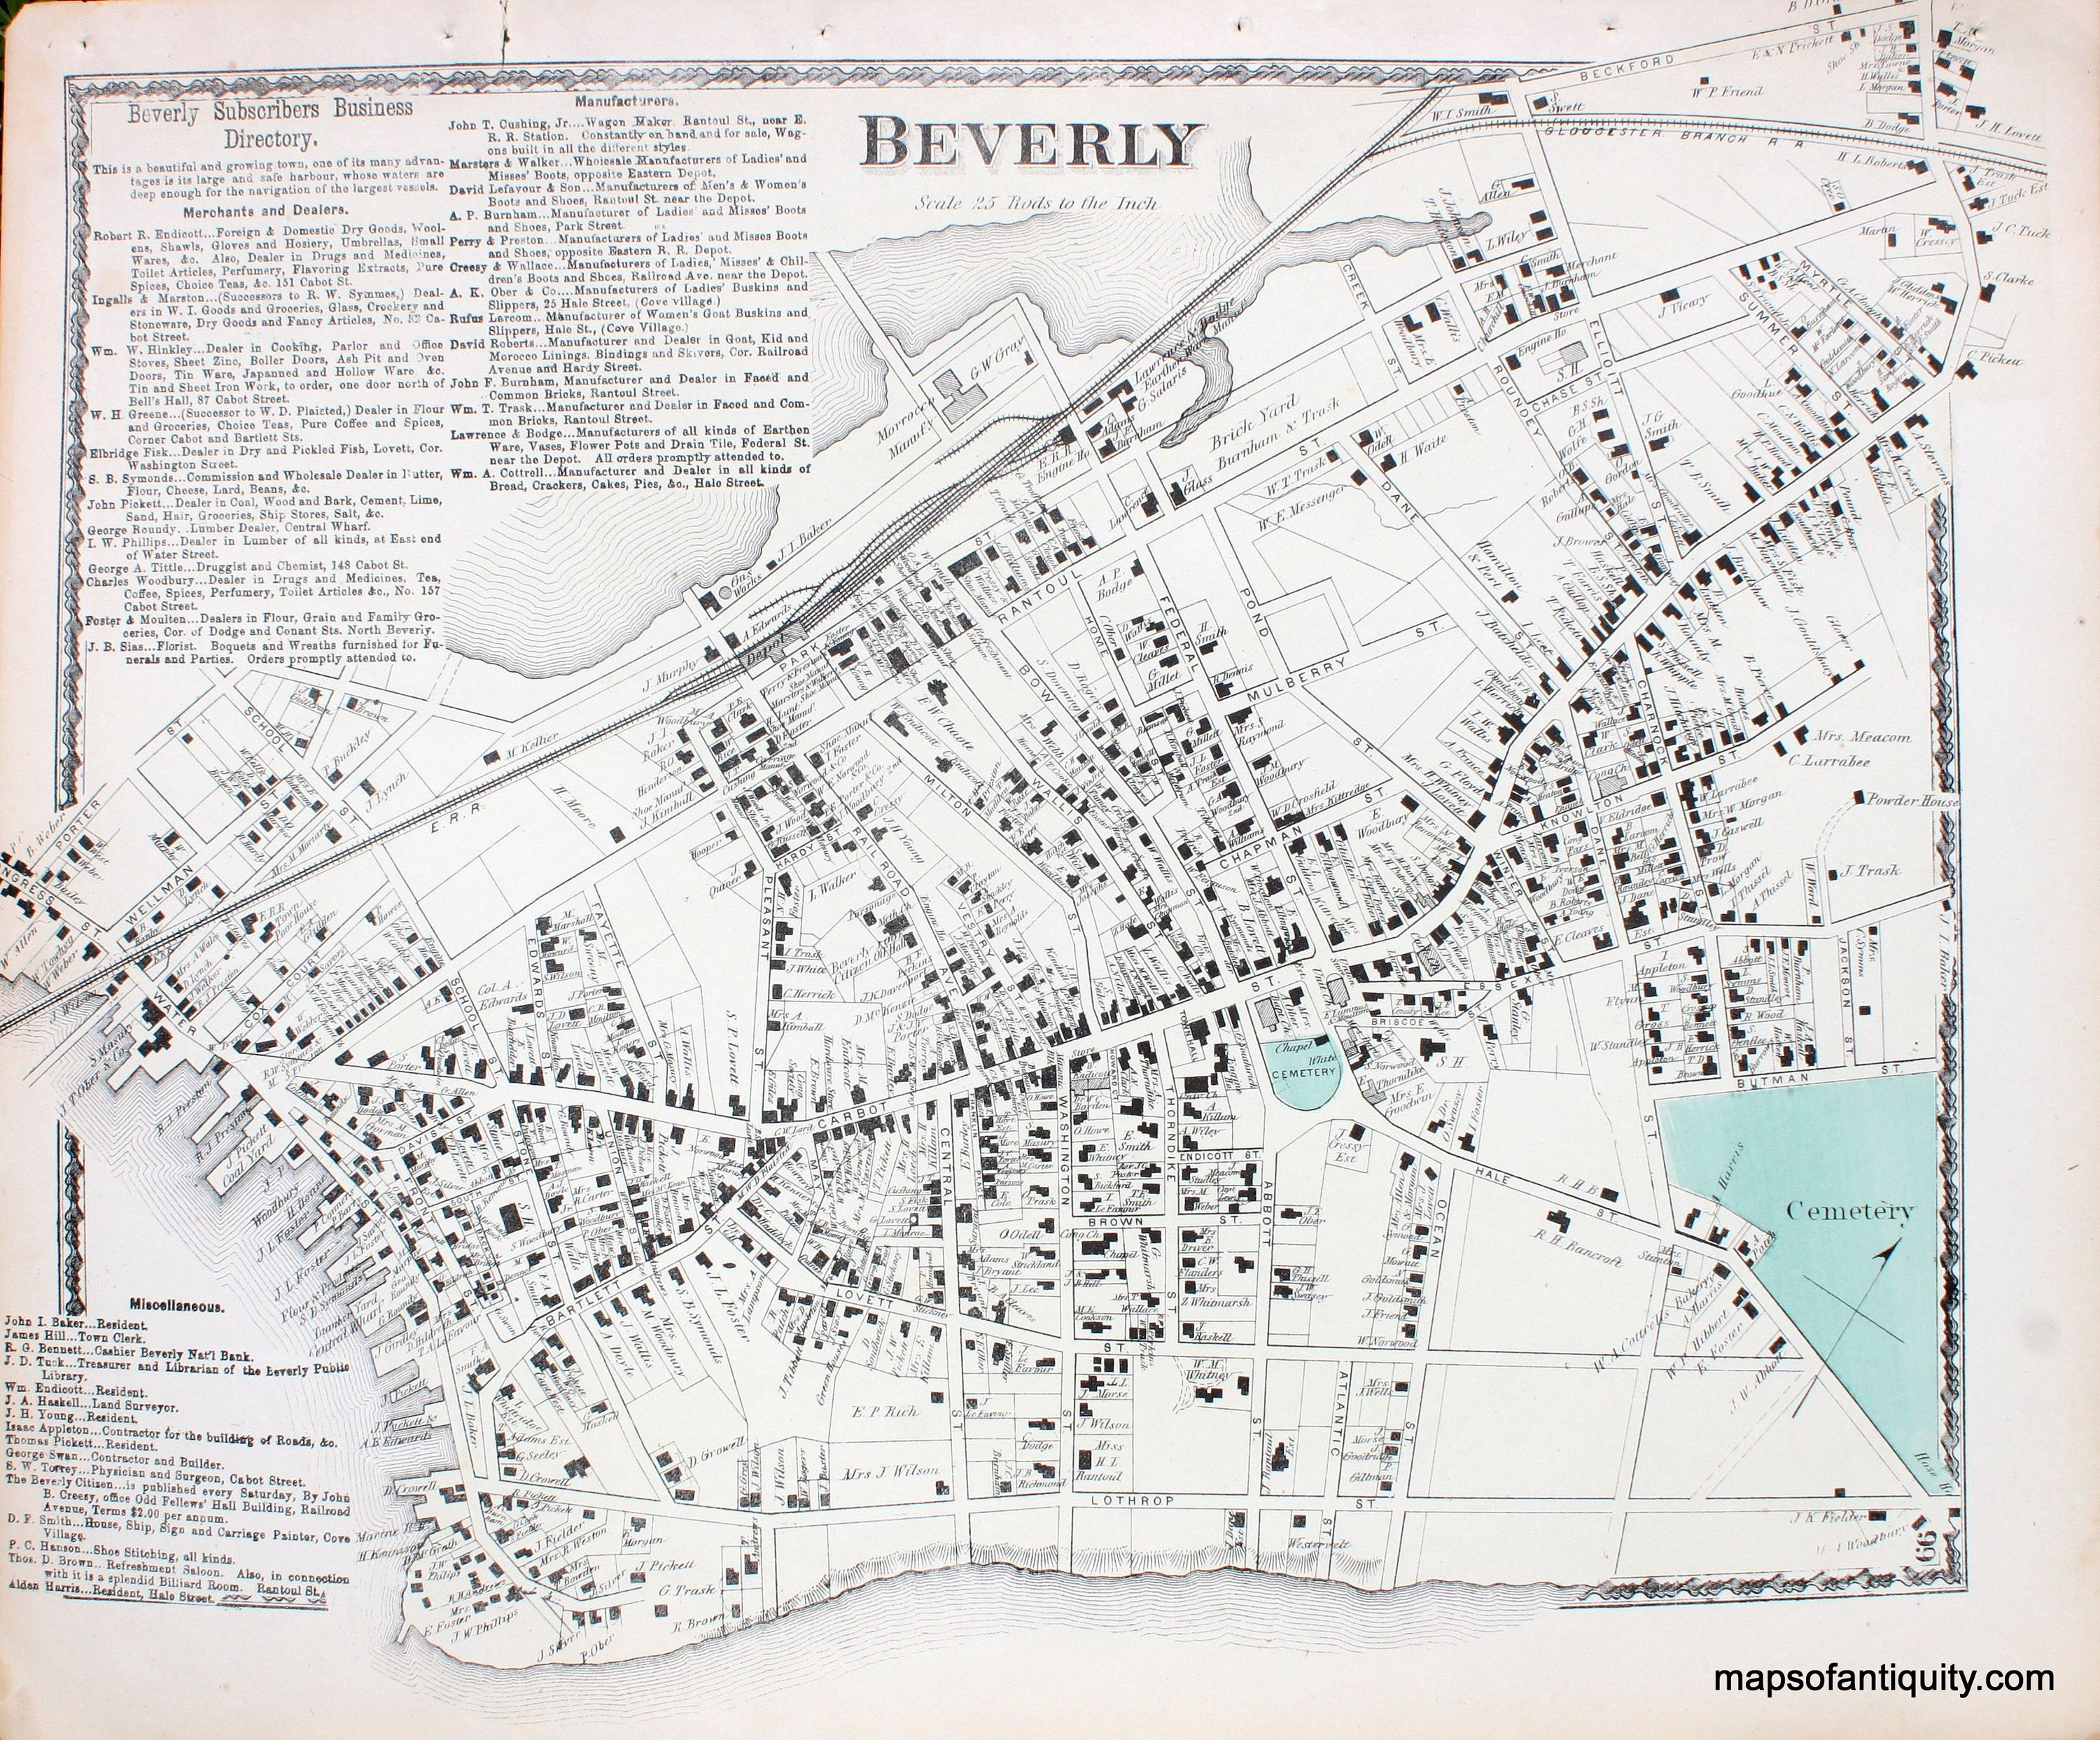 Beverly center massachusetts antique maps and charts beverly center massachusetts antique maps and charts original vintage nvjuhfo Gallery